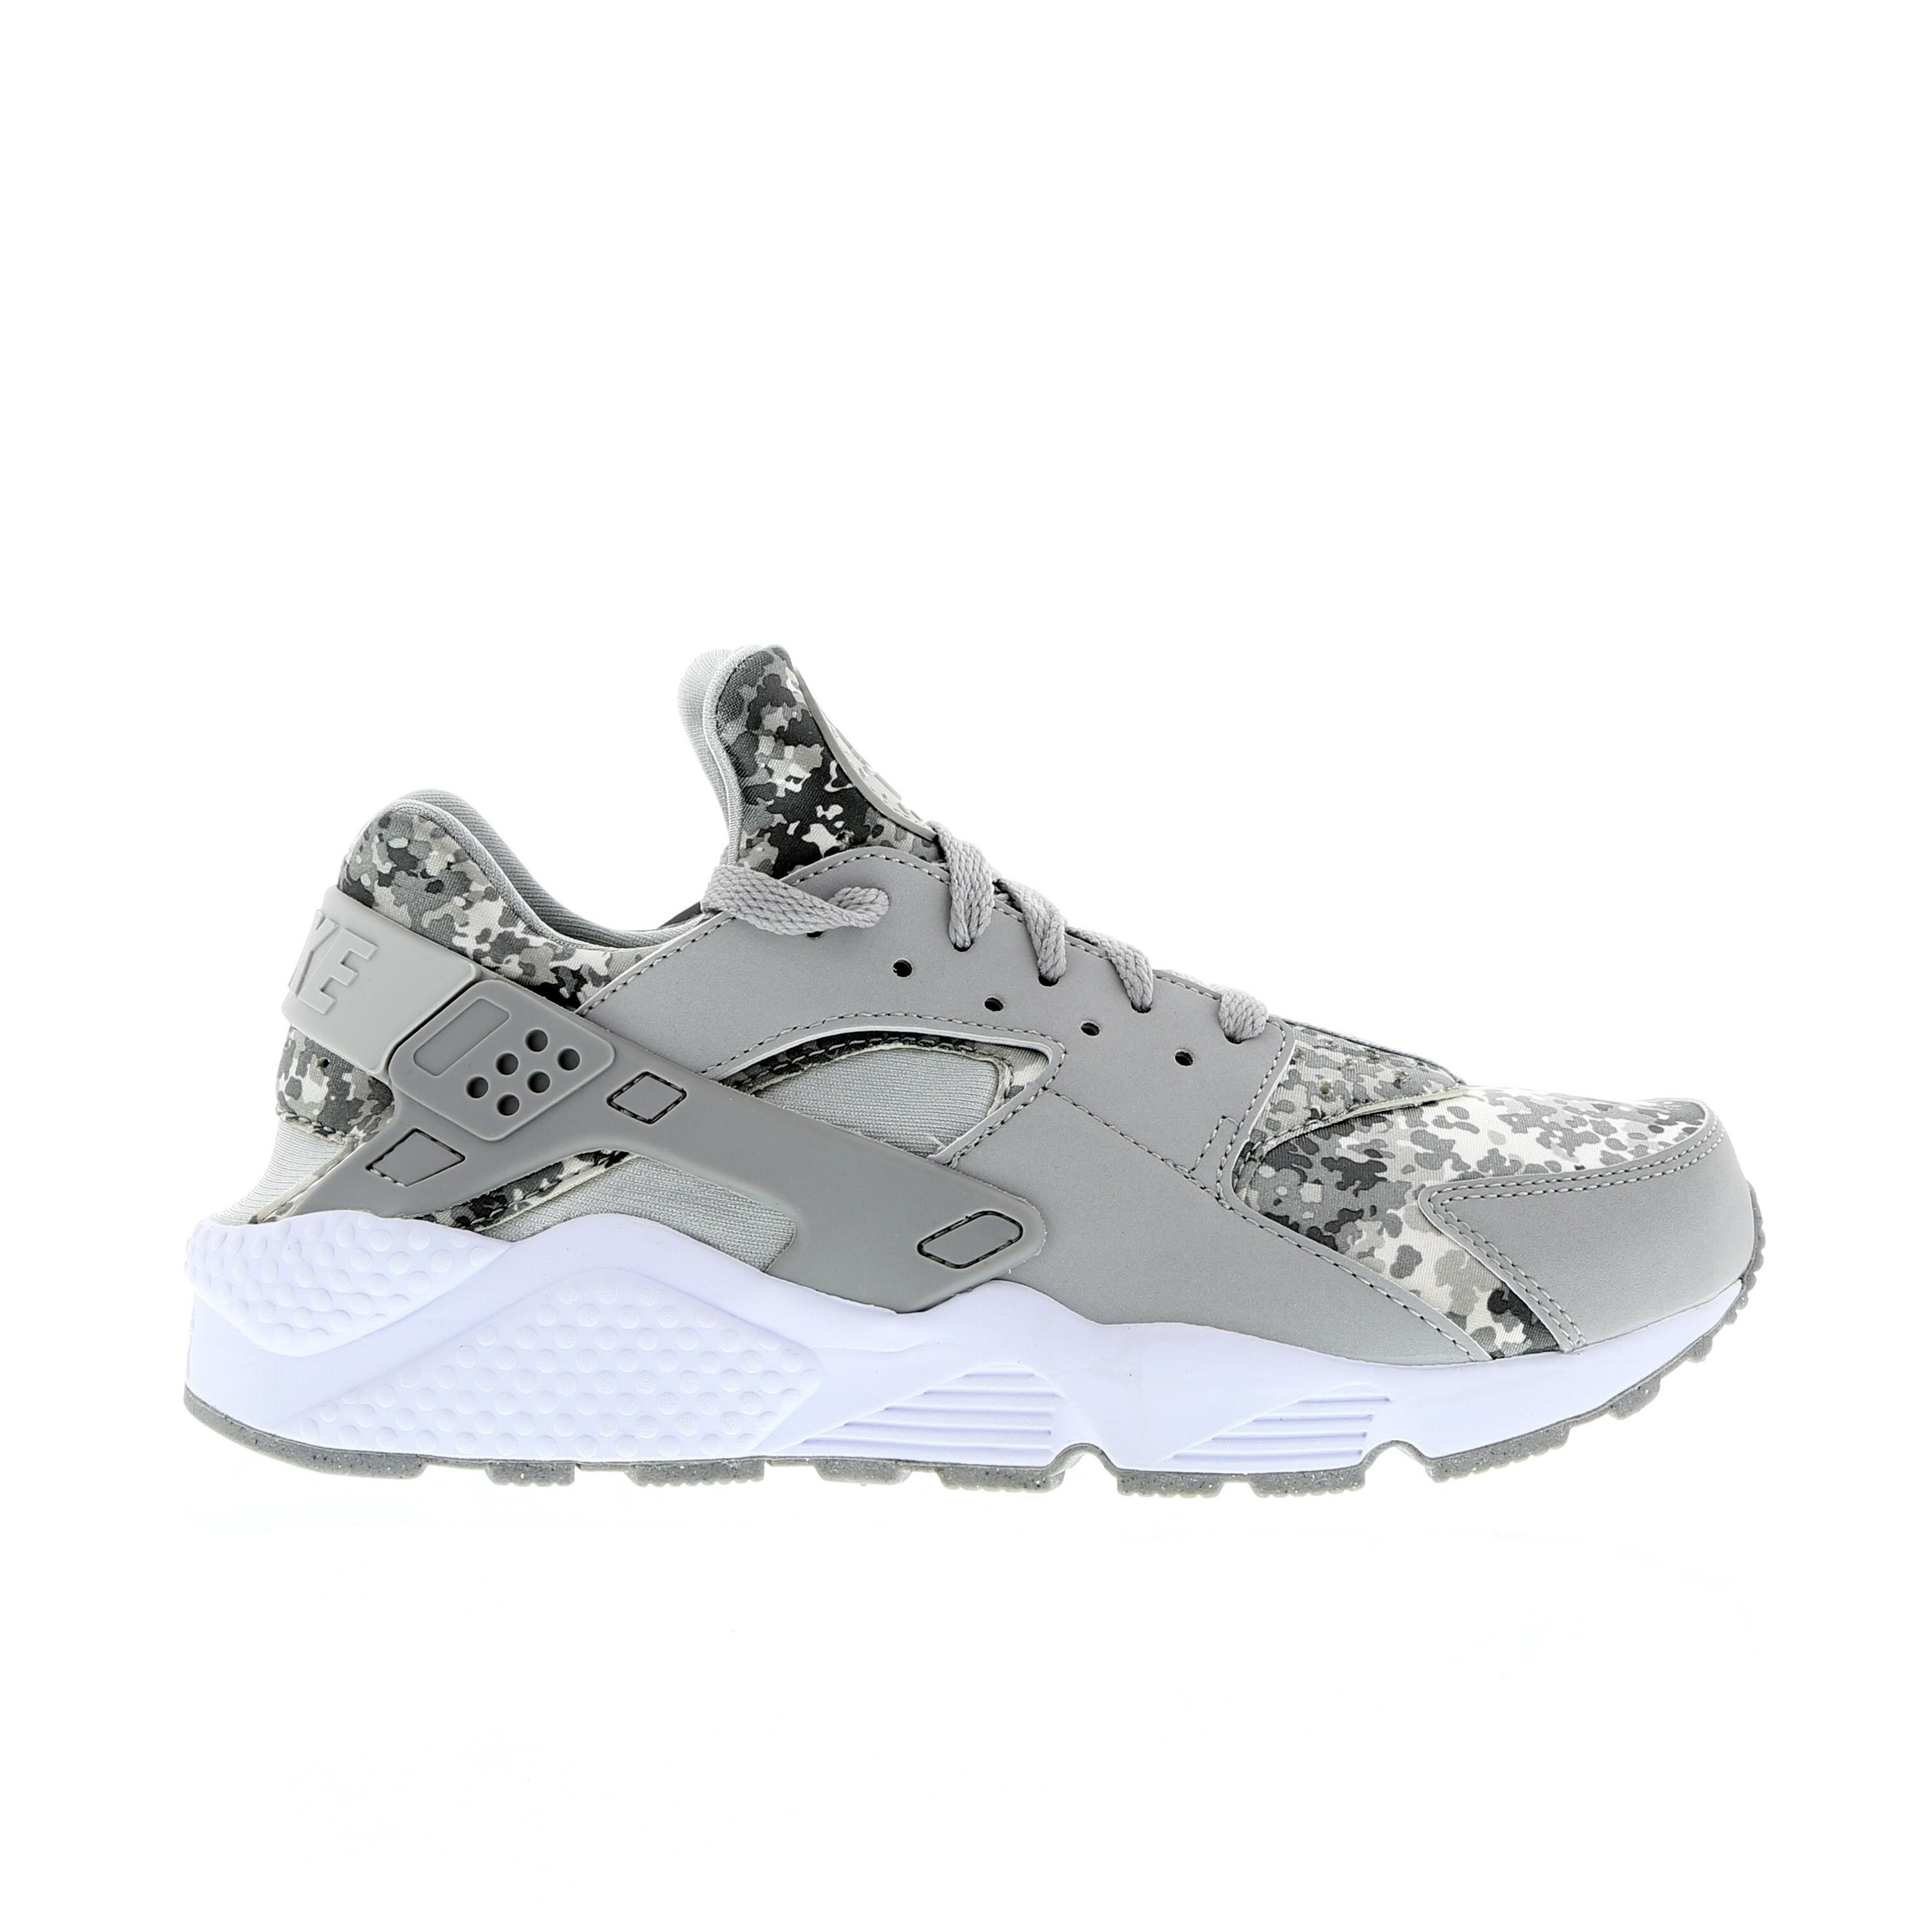 Nike Air Huarache Camo 318429-091 Grey/Grey/White Mens Shoes